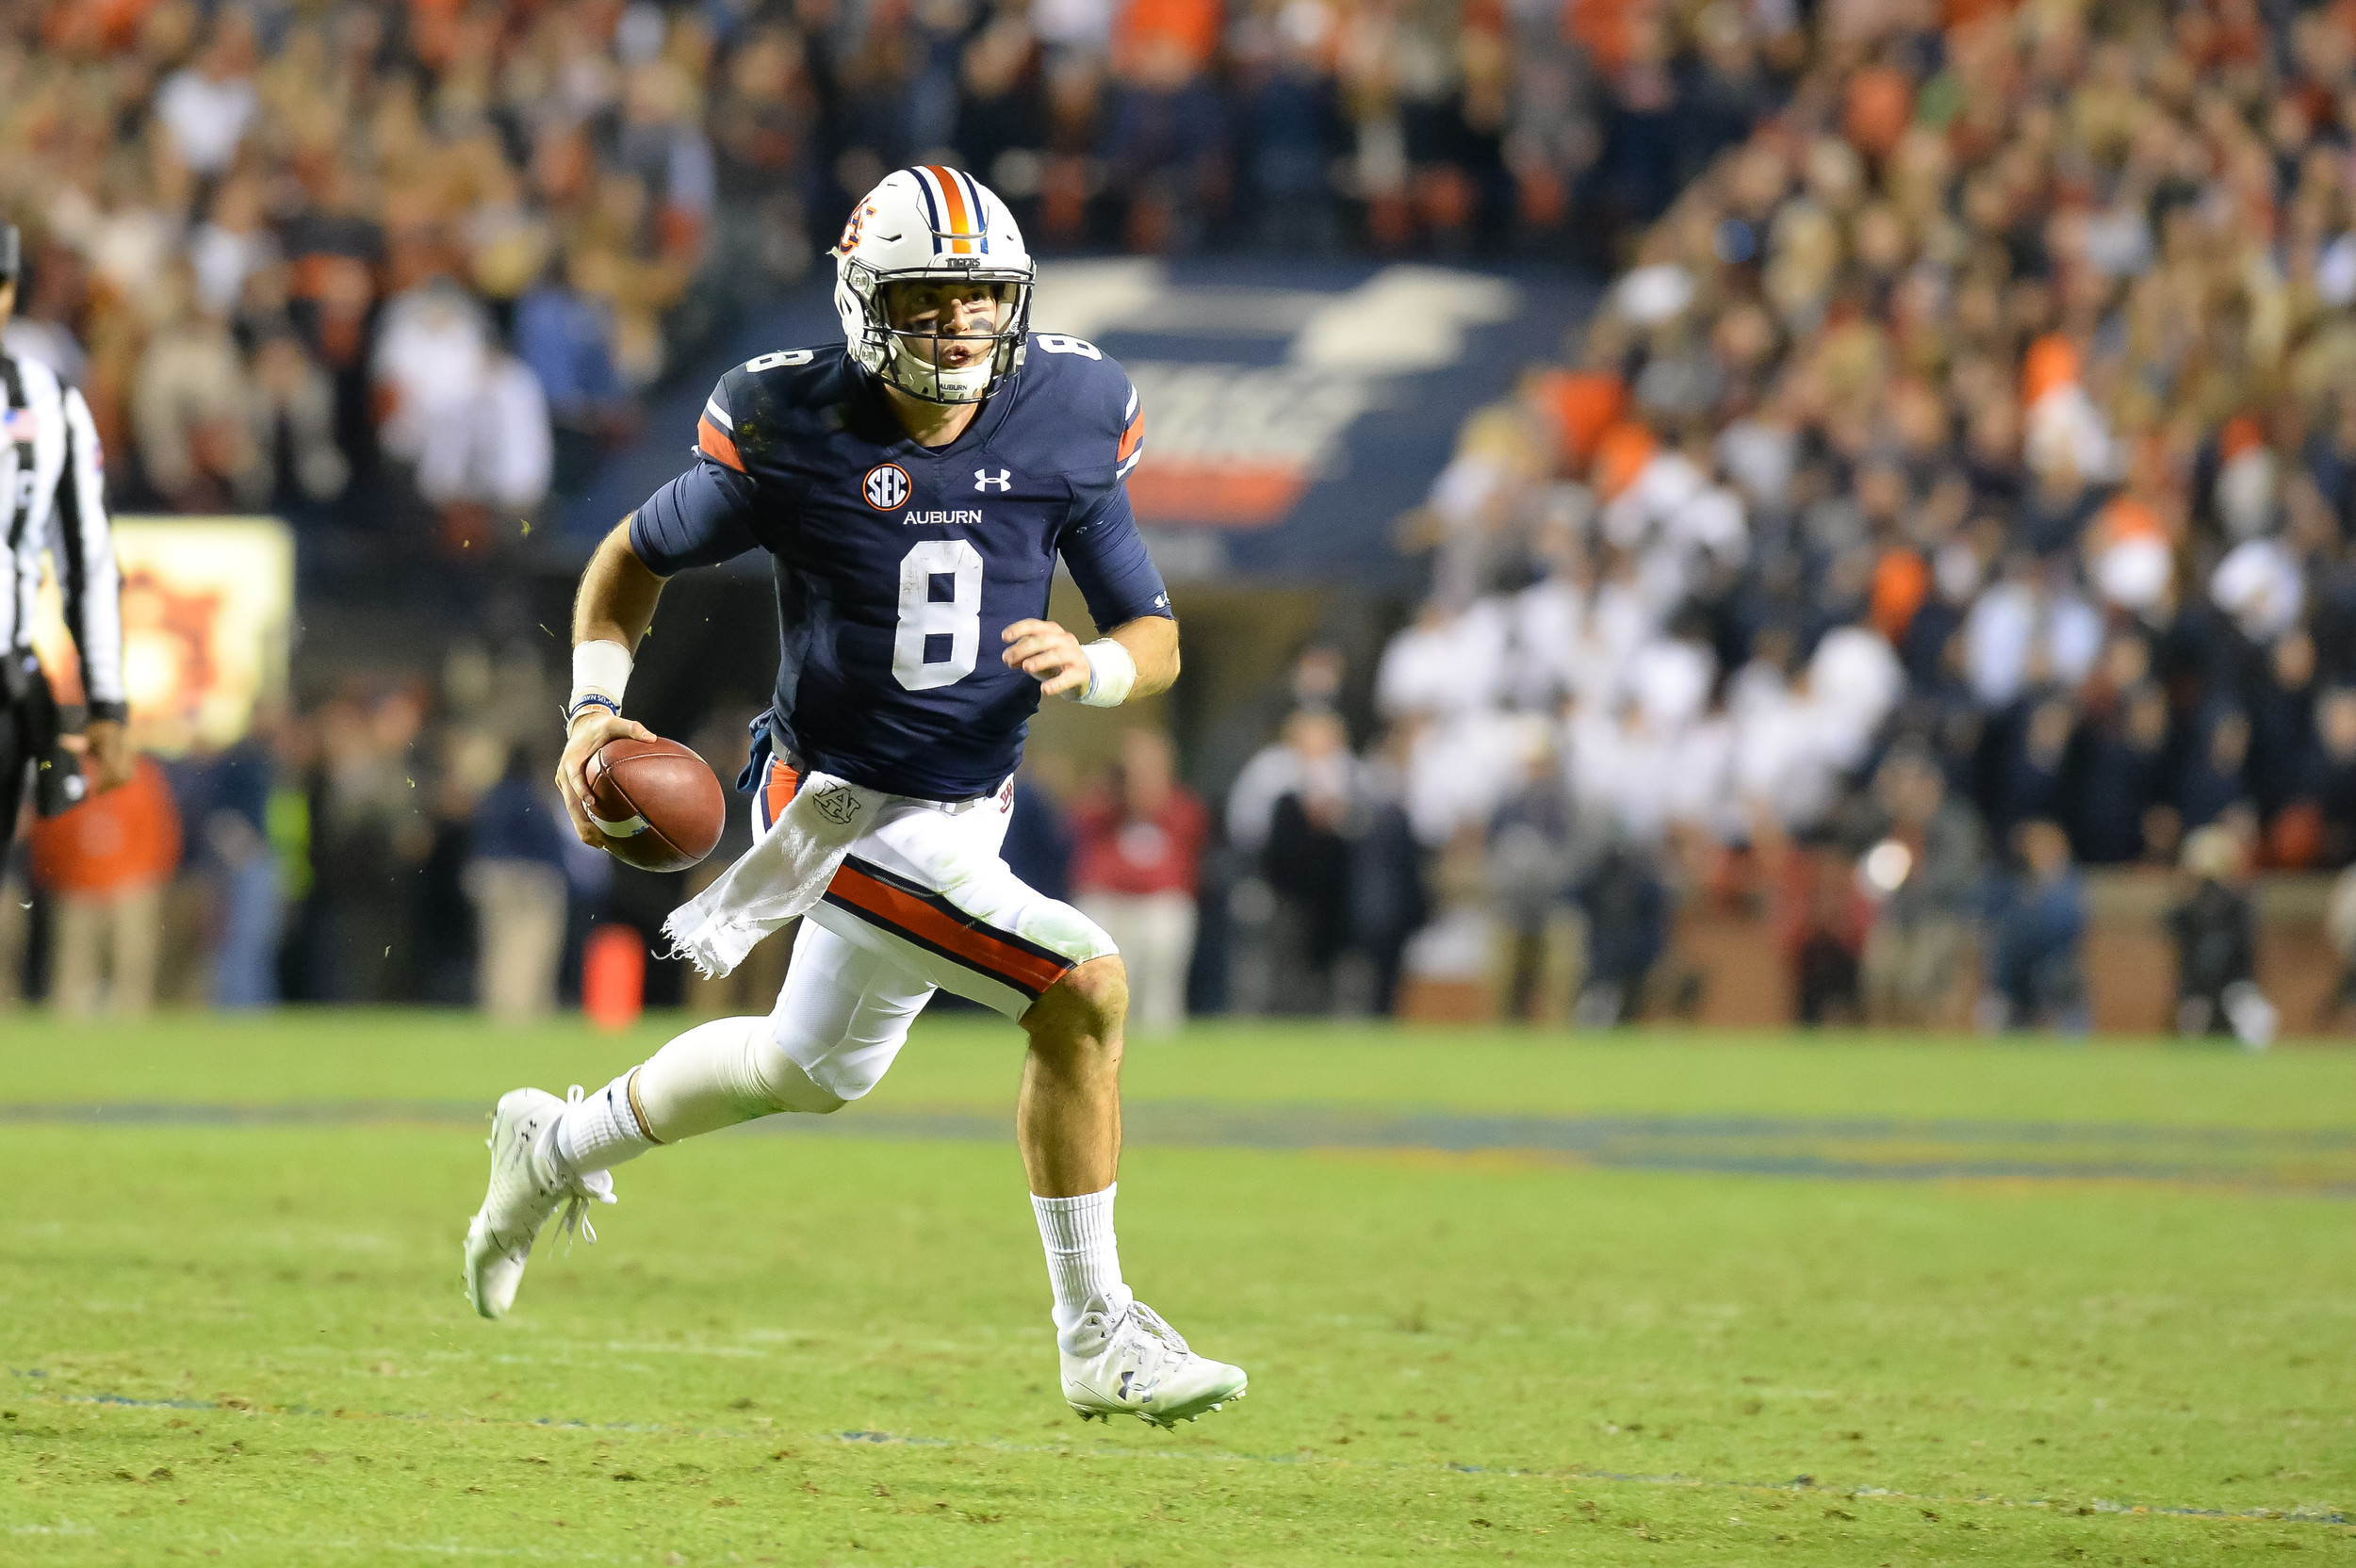 Auburn Tigers quarterback Jarrett Stidham (8) runs for a touchdown during the second half of Saturday's game, at Jordan-Hare Stadium.